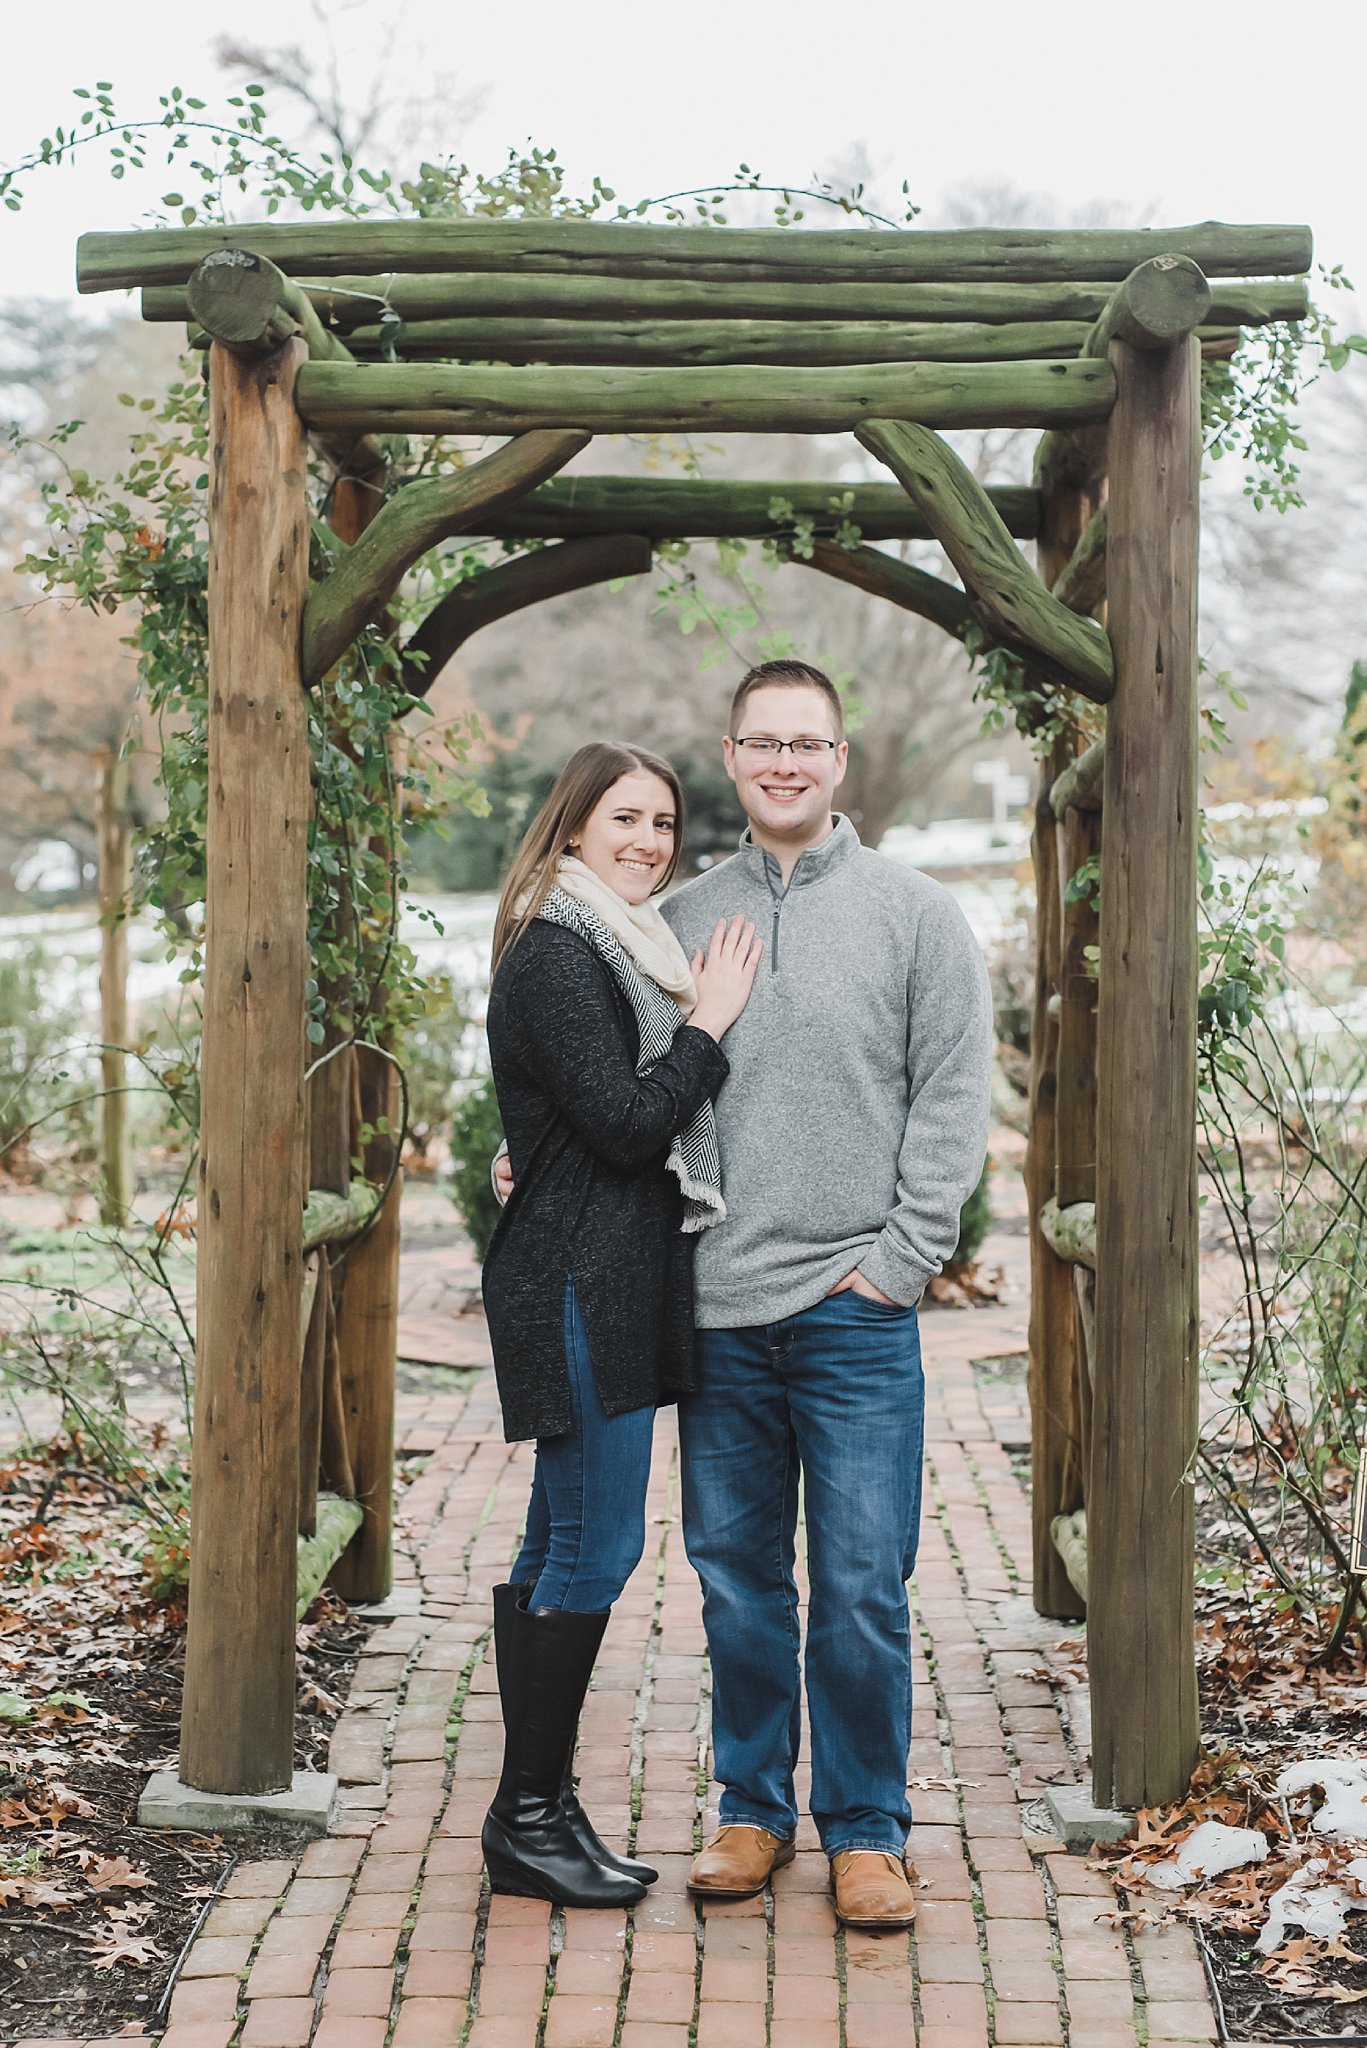 Hershey Gardens Winter engagement session Wedding Photography photo_0503.jpg